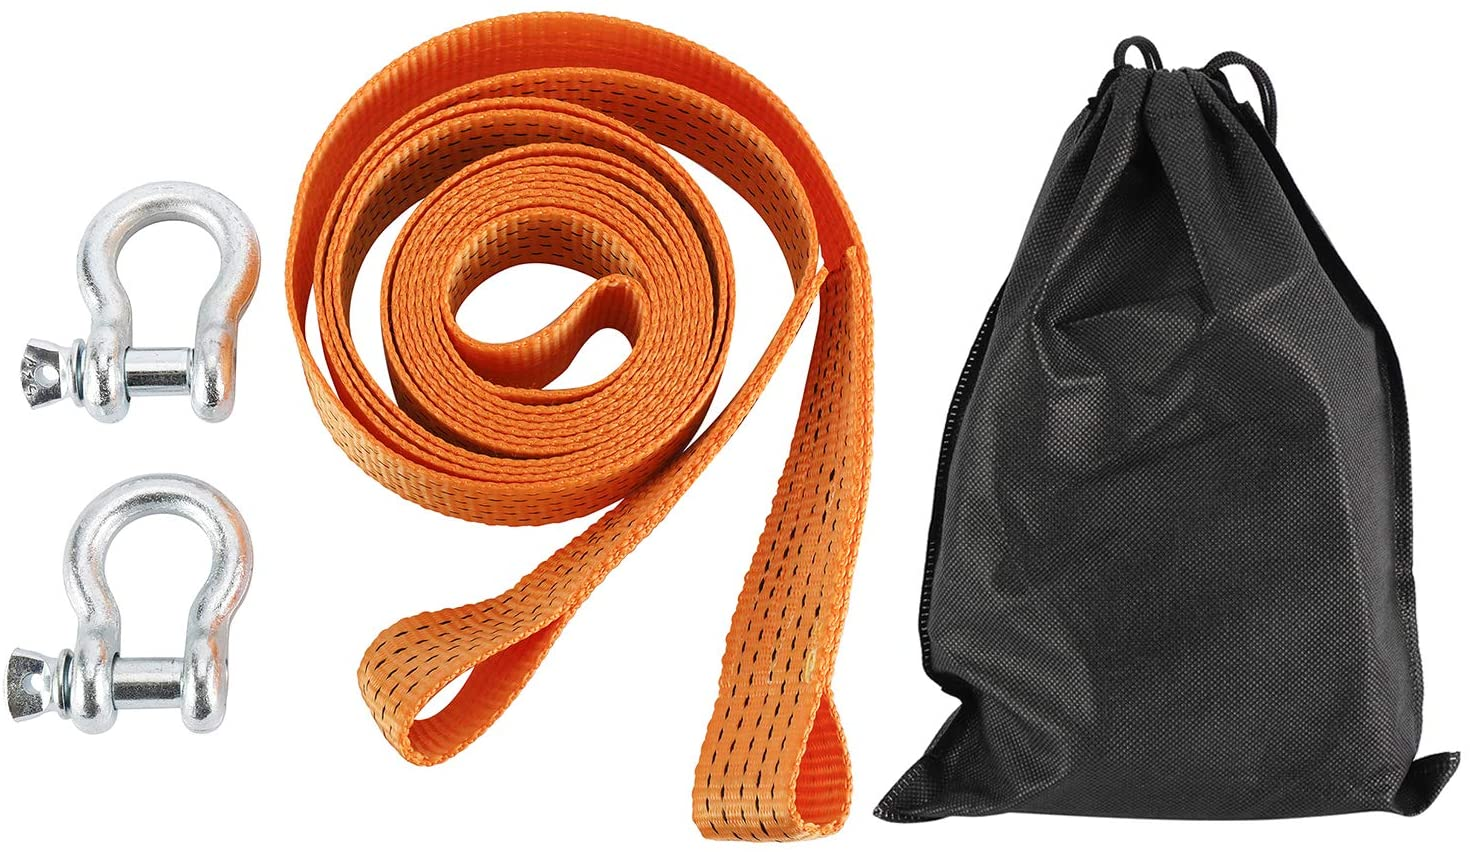 NovelBee 2 Inch x 13 Feet Nylon Recovery Heavy Duty Tow Strap with 2 Shackles and Storage Bag